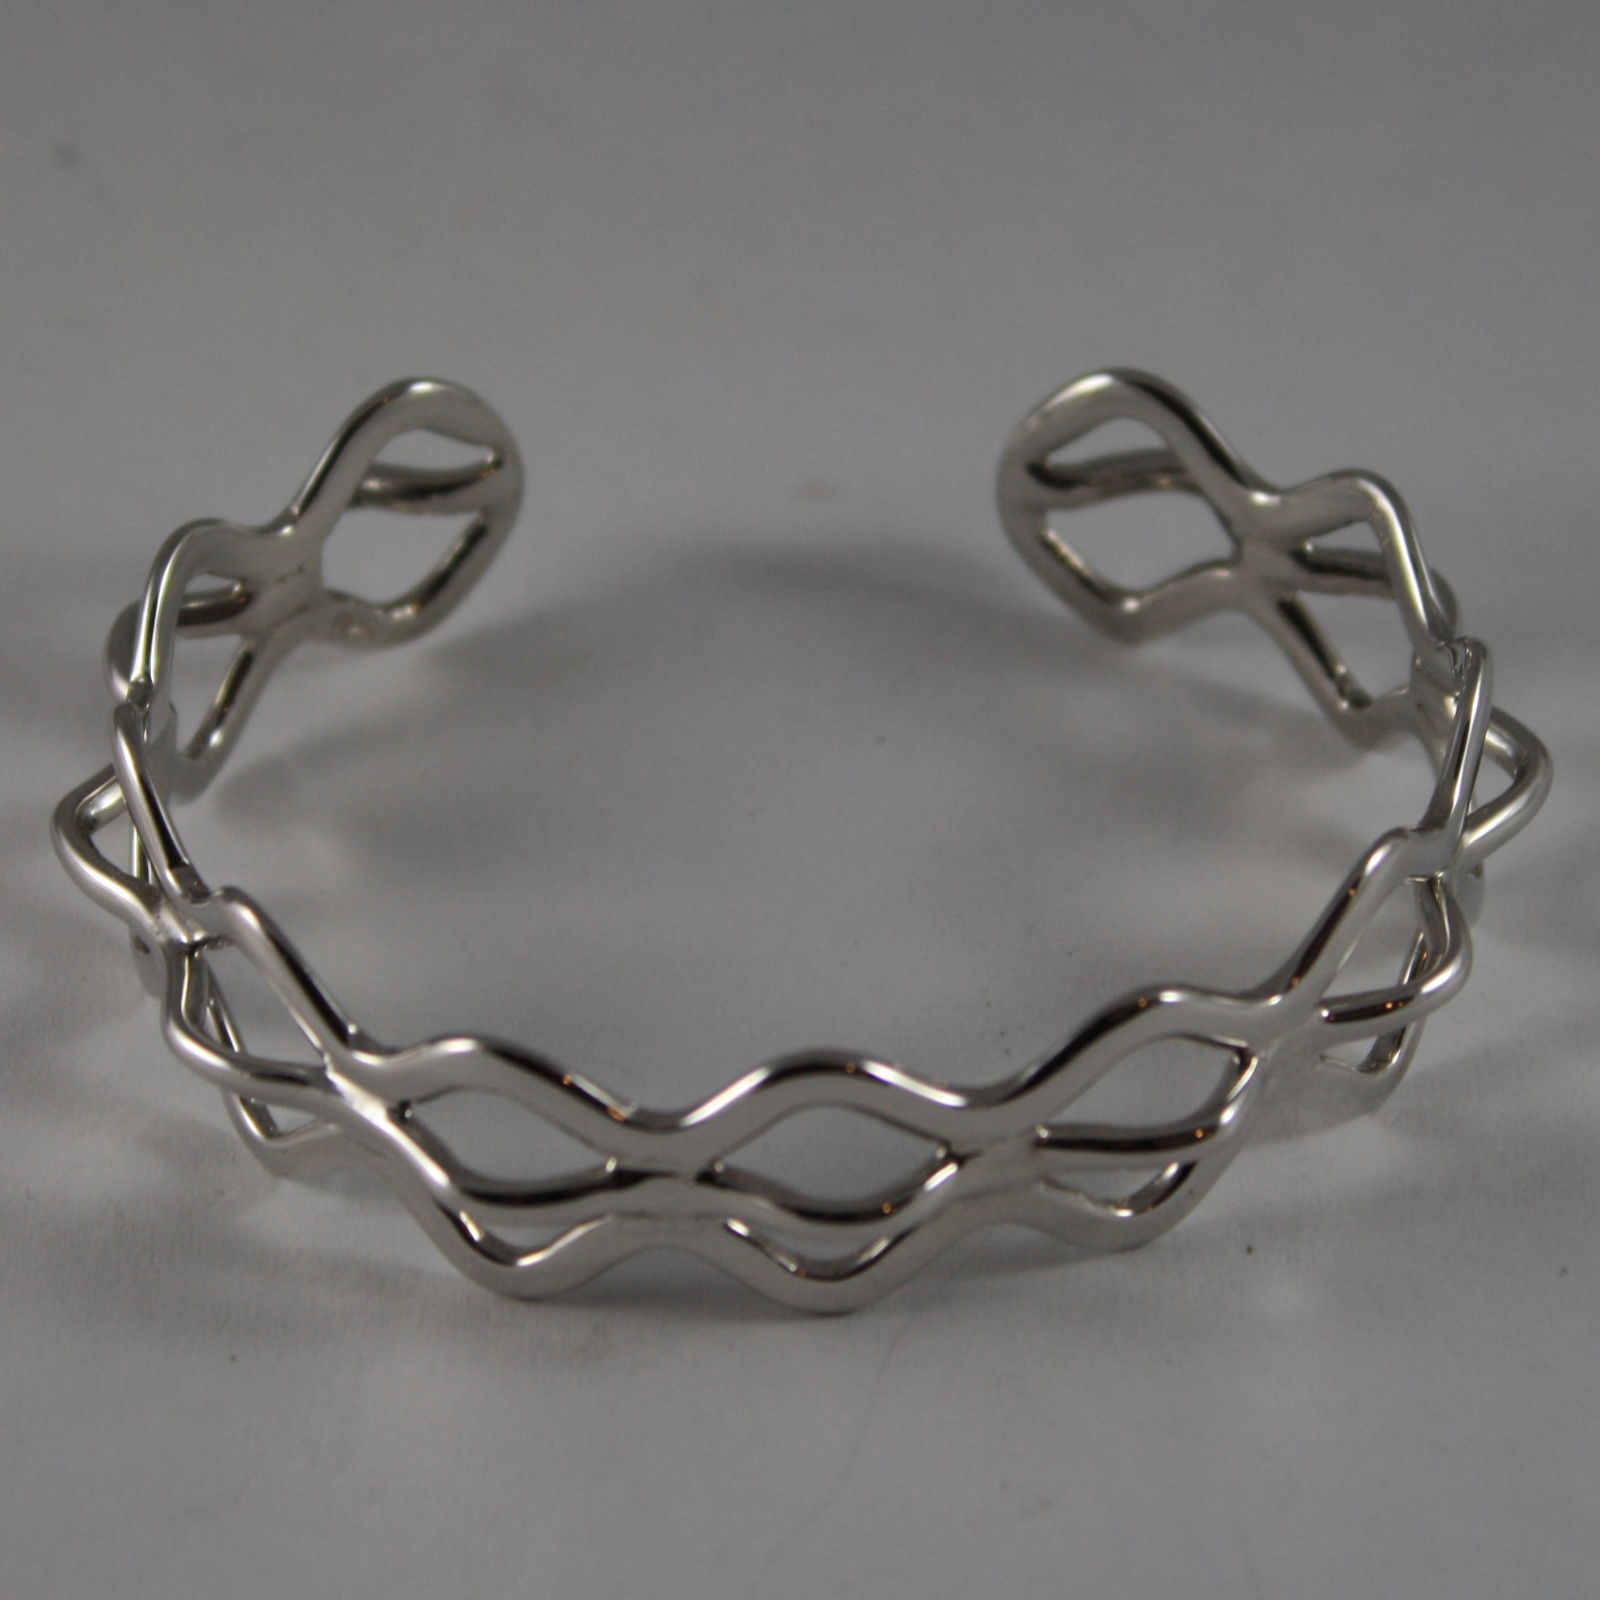 .925 RHODIUM SILVER RIGID BRACELET WITH RUMBLES